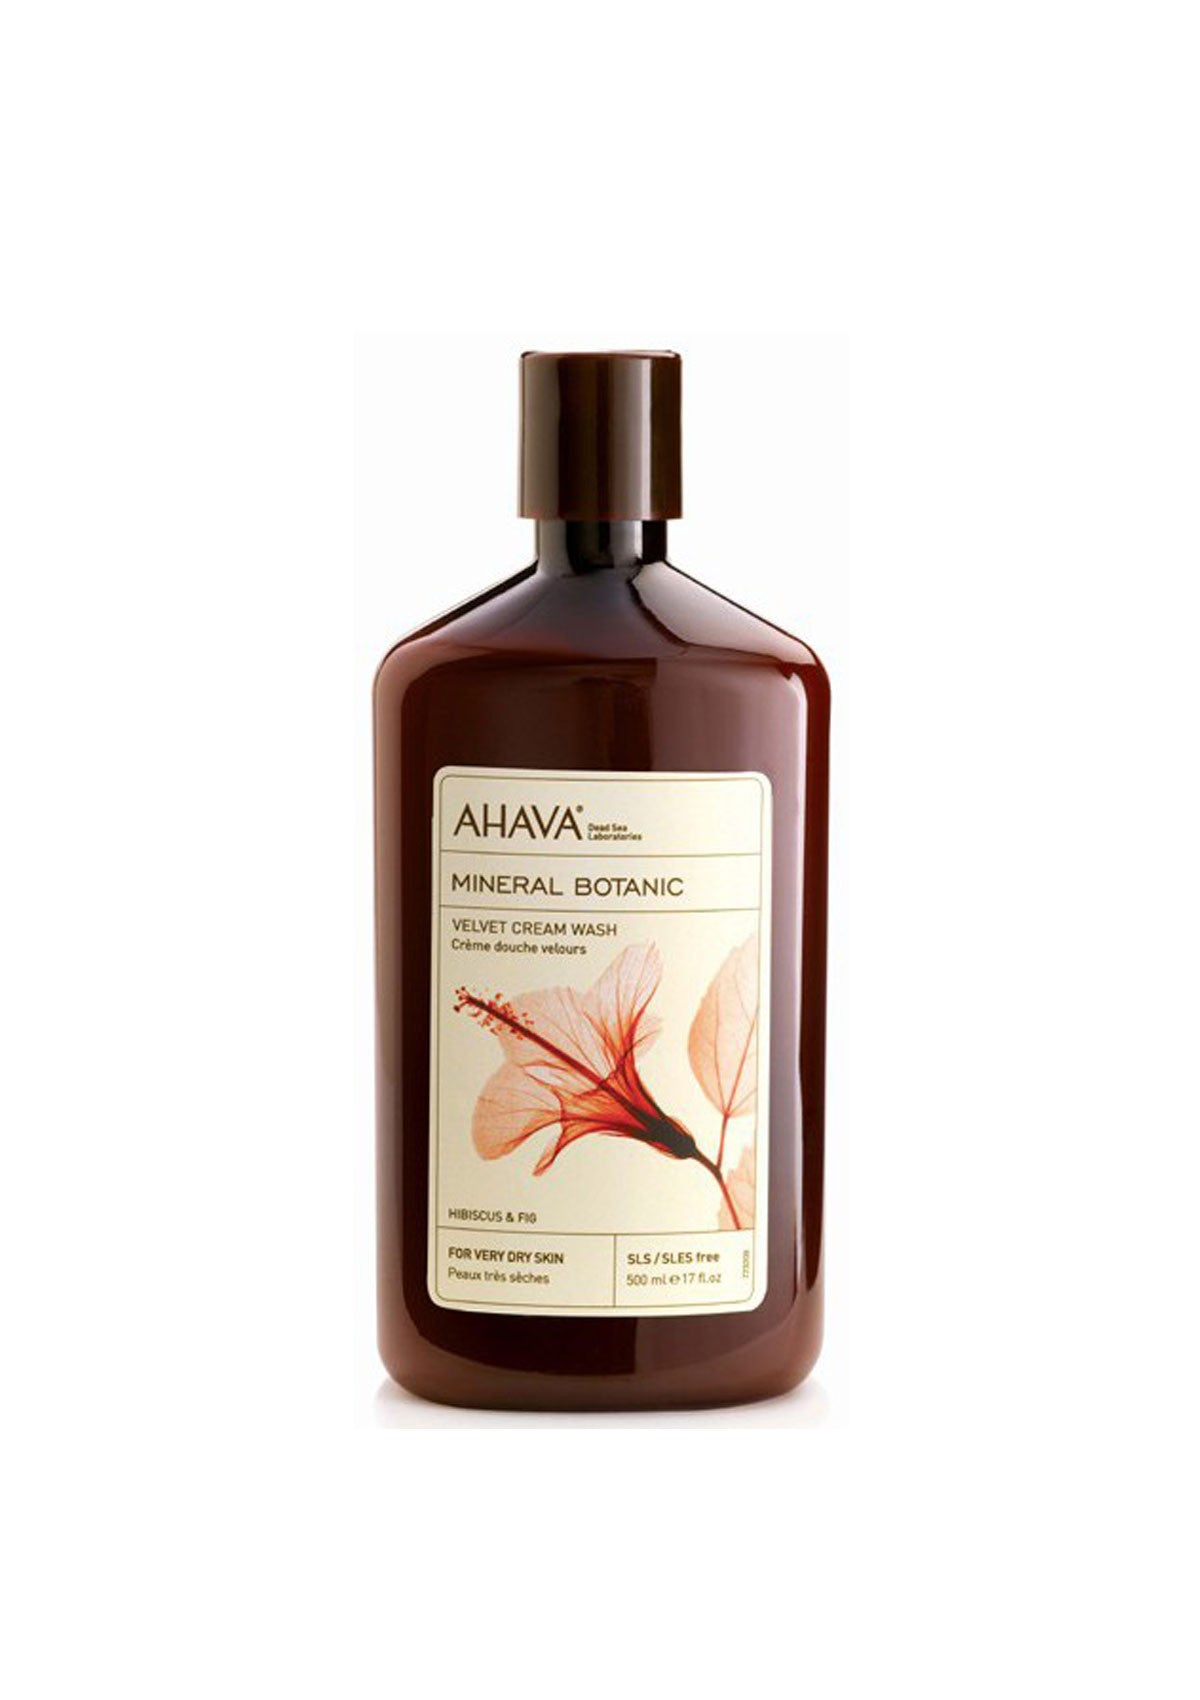 AHAVA - Mineral Botanic Cream Wash - Hibiscus & Fig - DeadSeaShop.co.uk